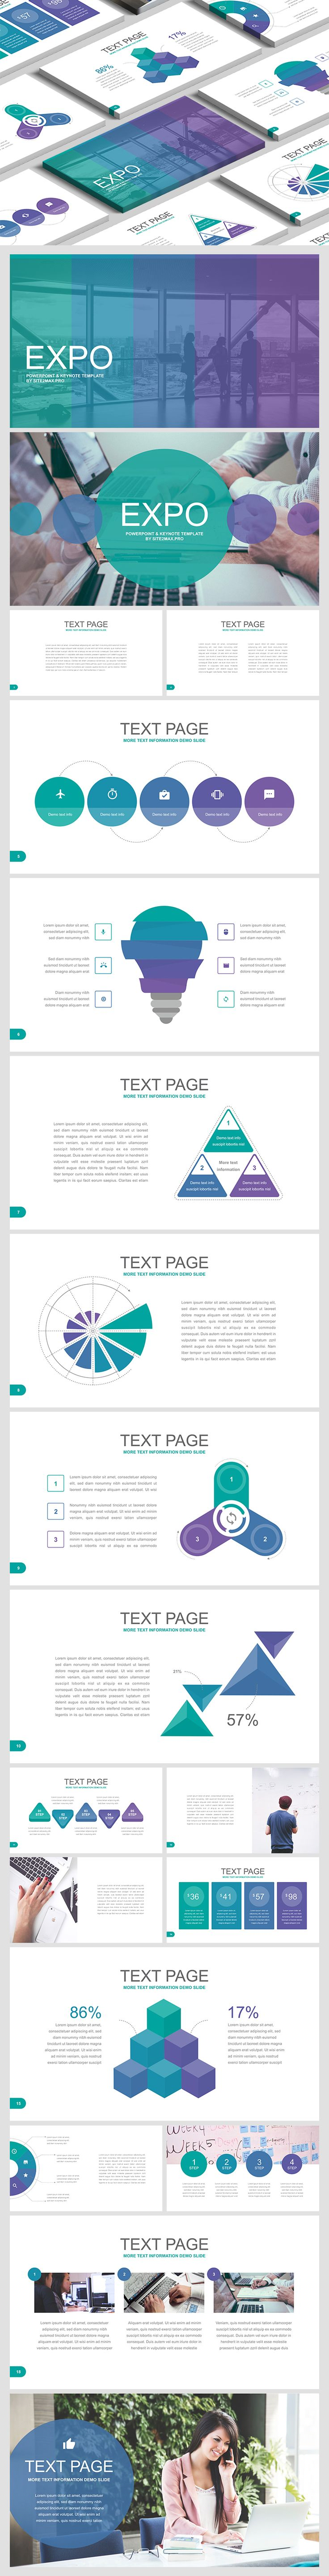 36 best free keynote template images on pinterest free keynote the expo free powerpoint template is suitable for marketers the instruments allow you to create the presentation in several minutes more free templates toneelgroepblik